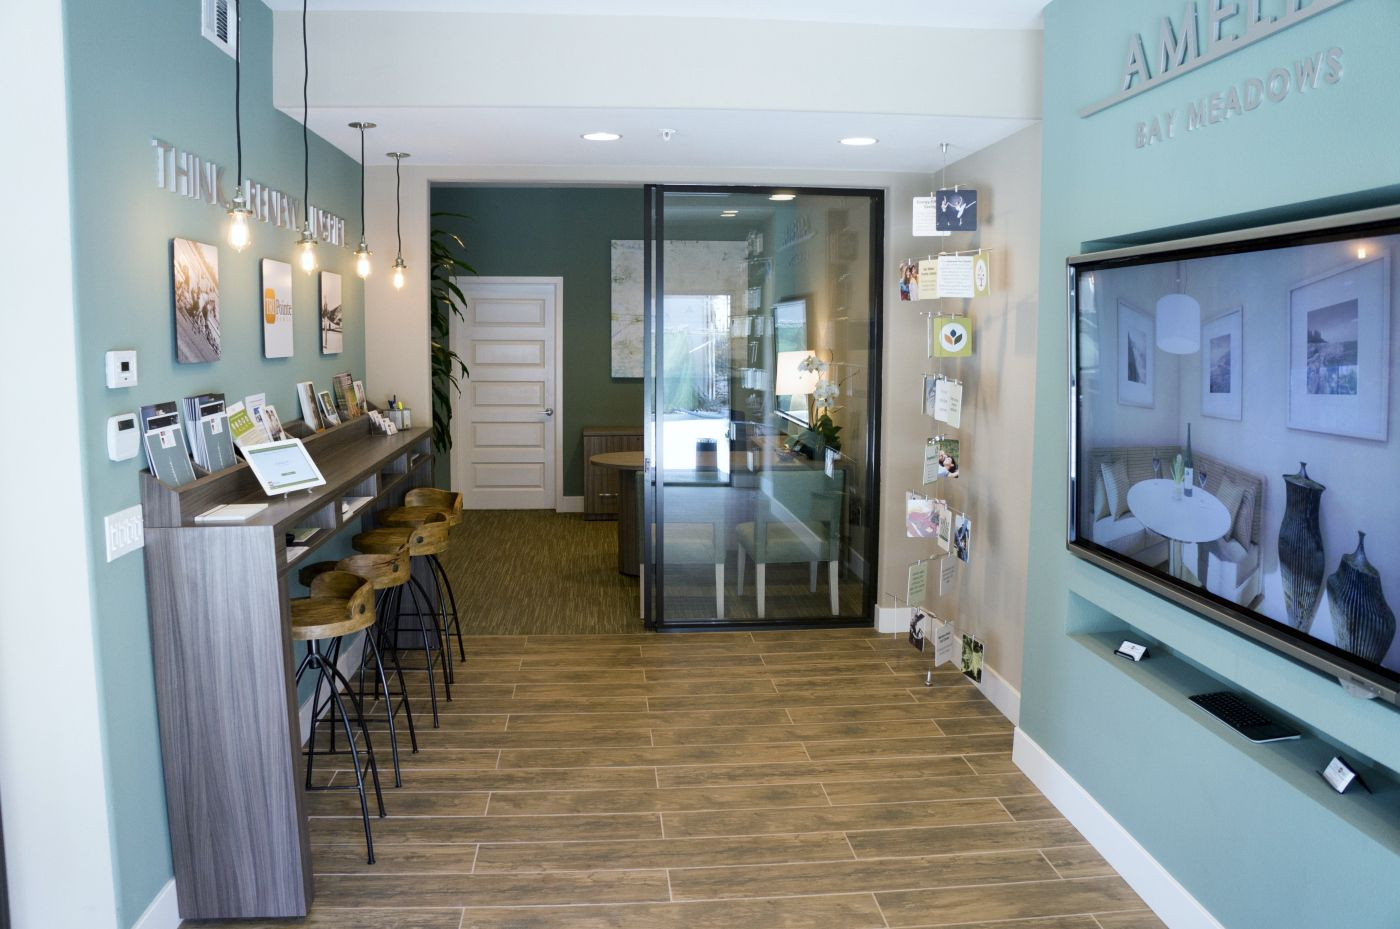 amelia sales office design. Amelia Sales Office Design And Install M